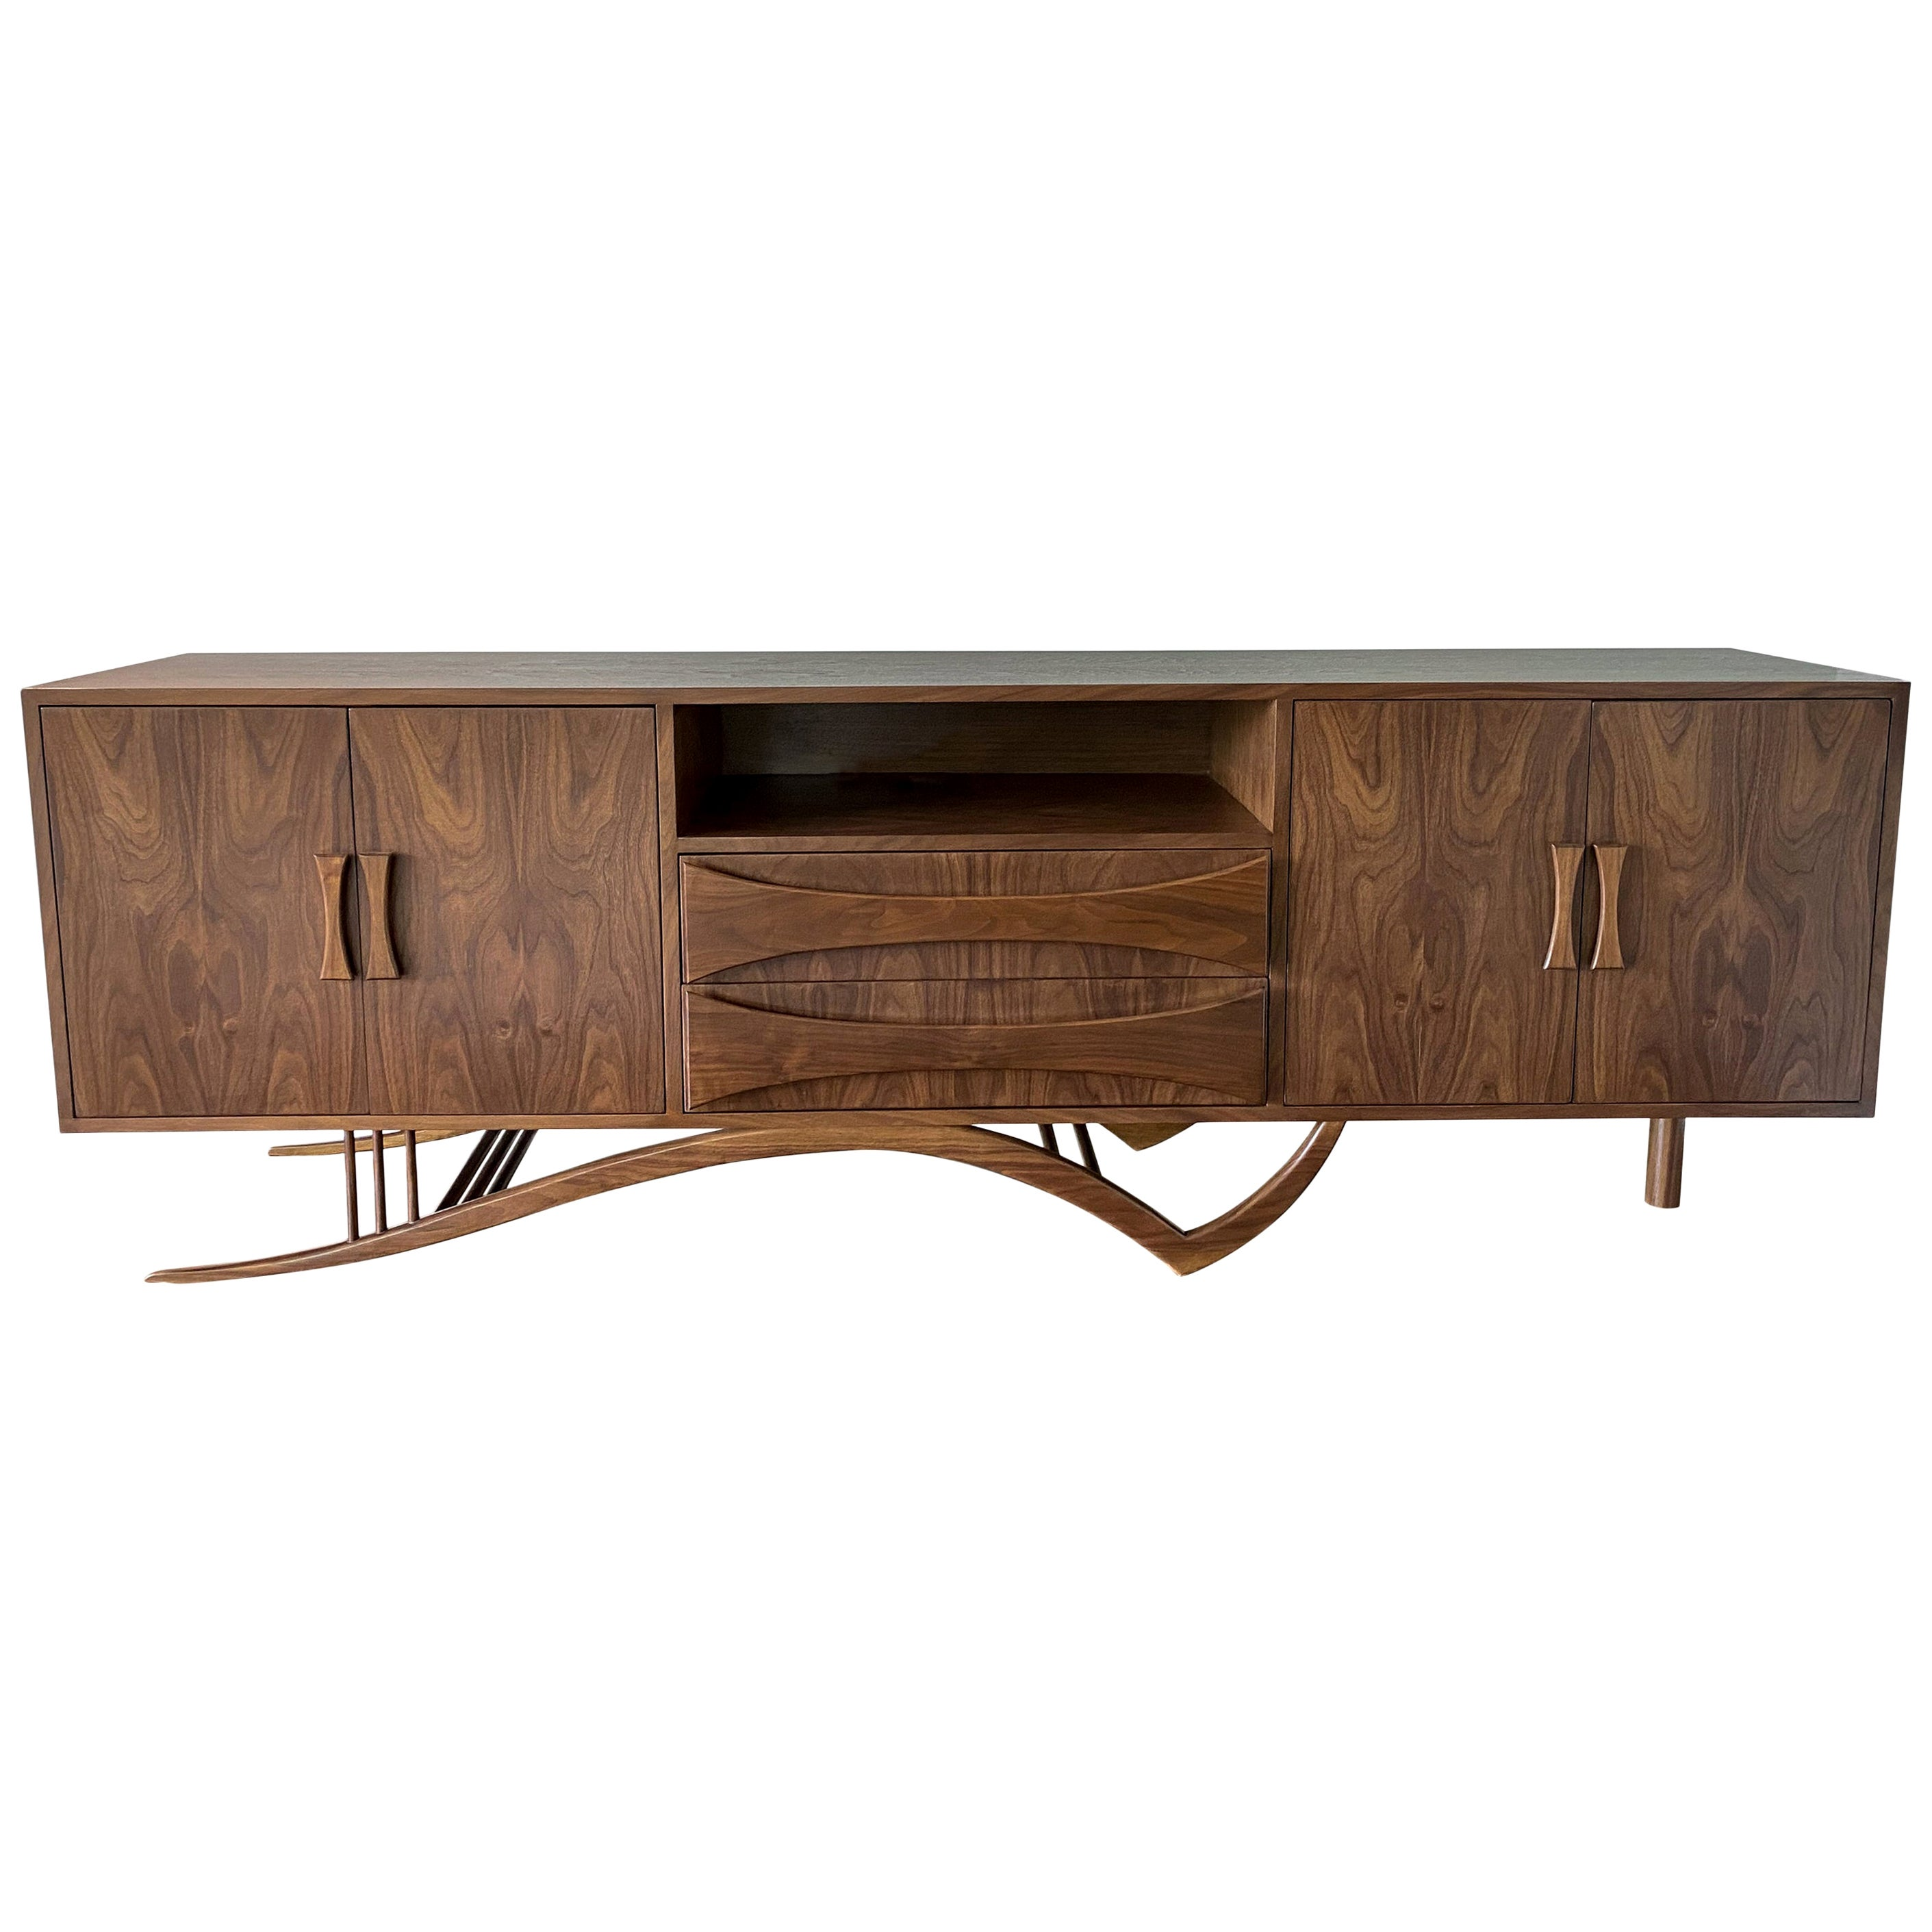 Custom Midcentury Style Walnut Sideboard with Curved Leg by Adesso Imports